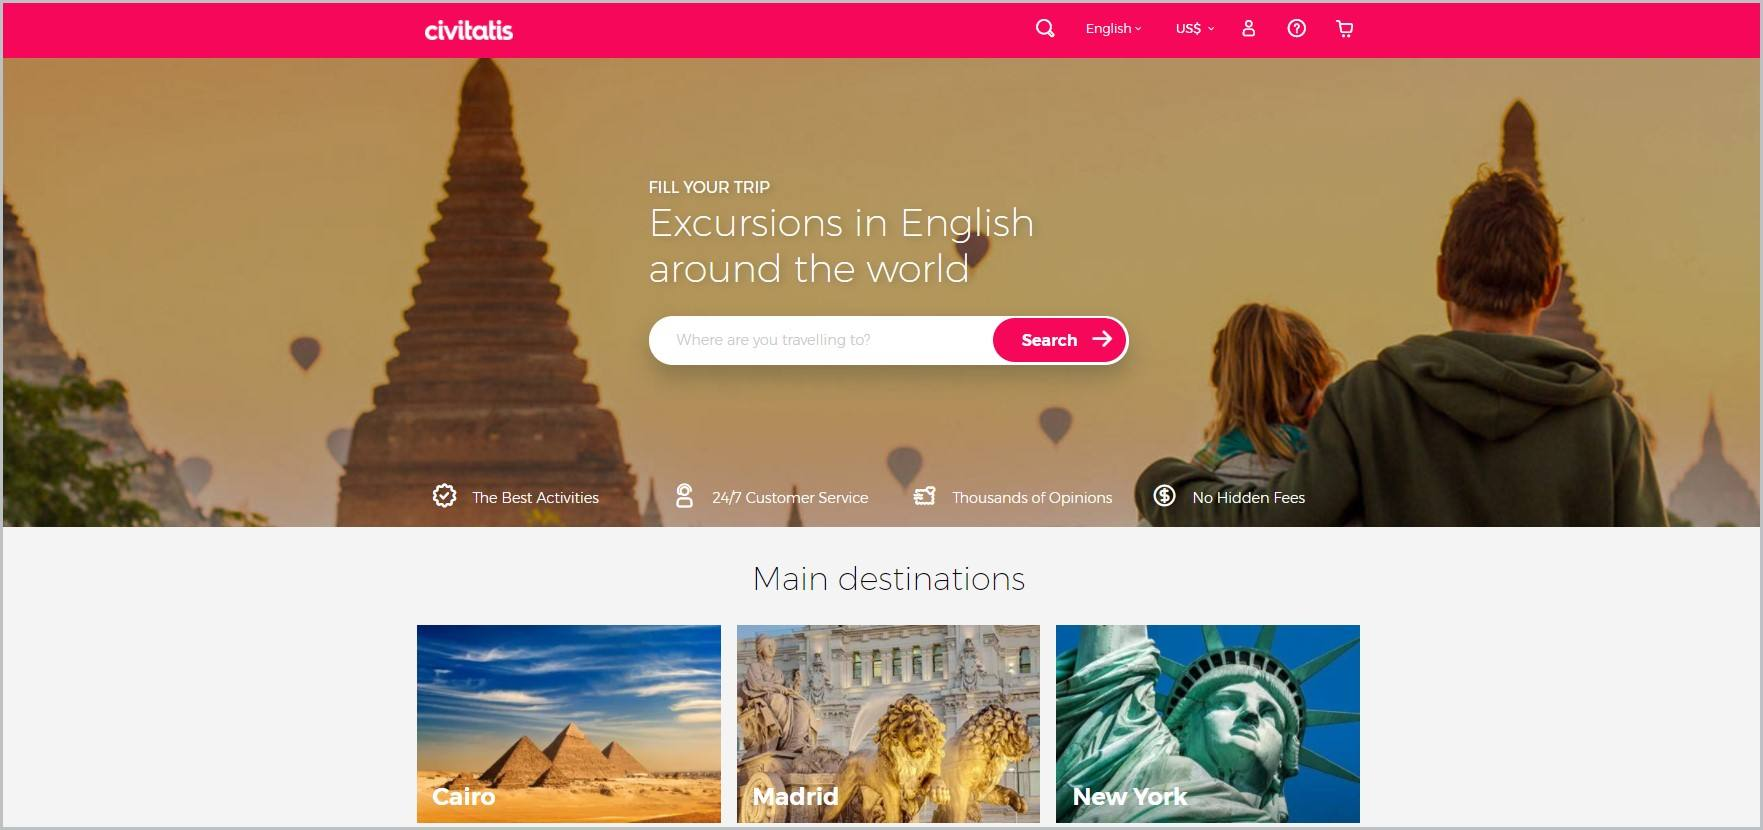 screenshot of Civitatis homepage, with pink header with the website's name and main navigation bar